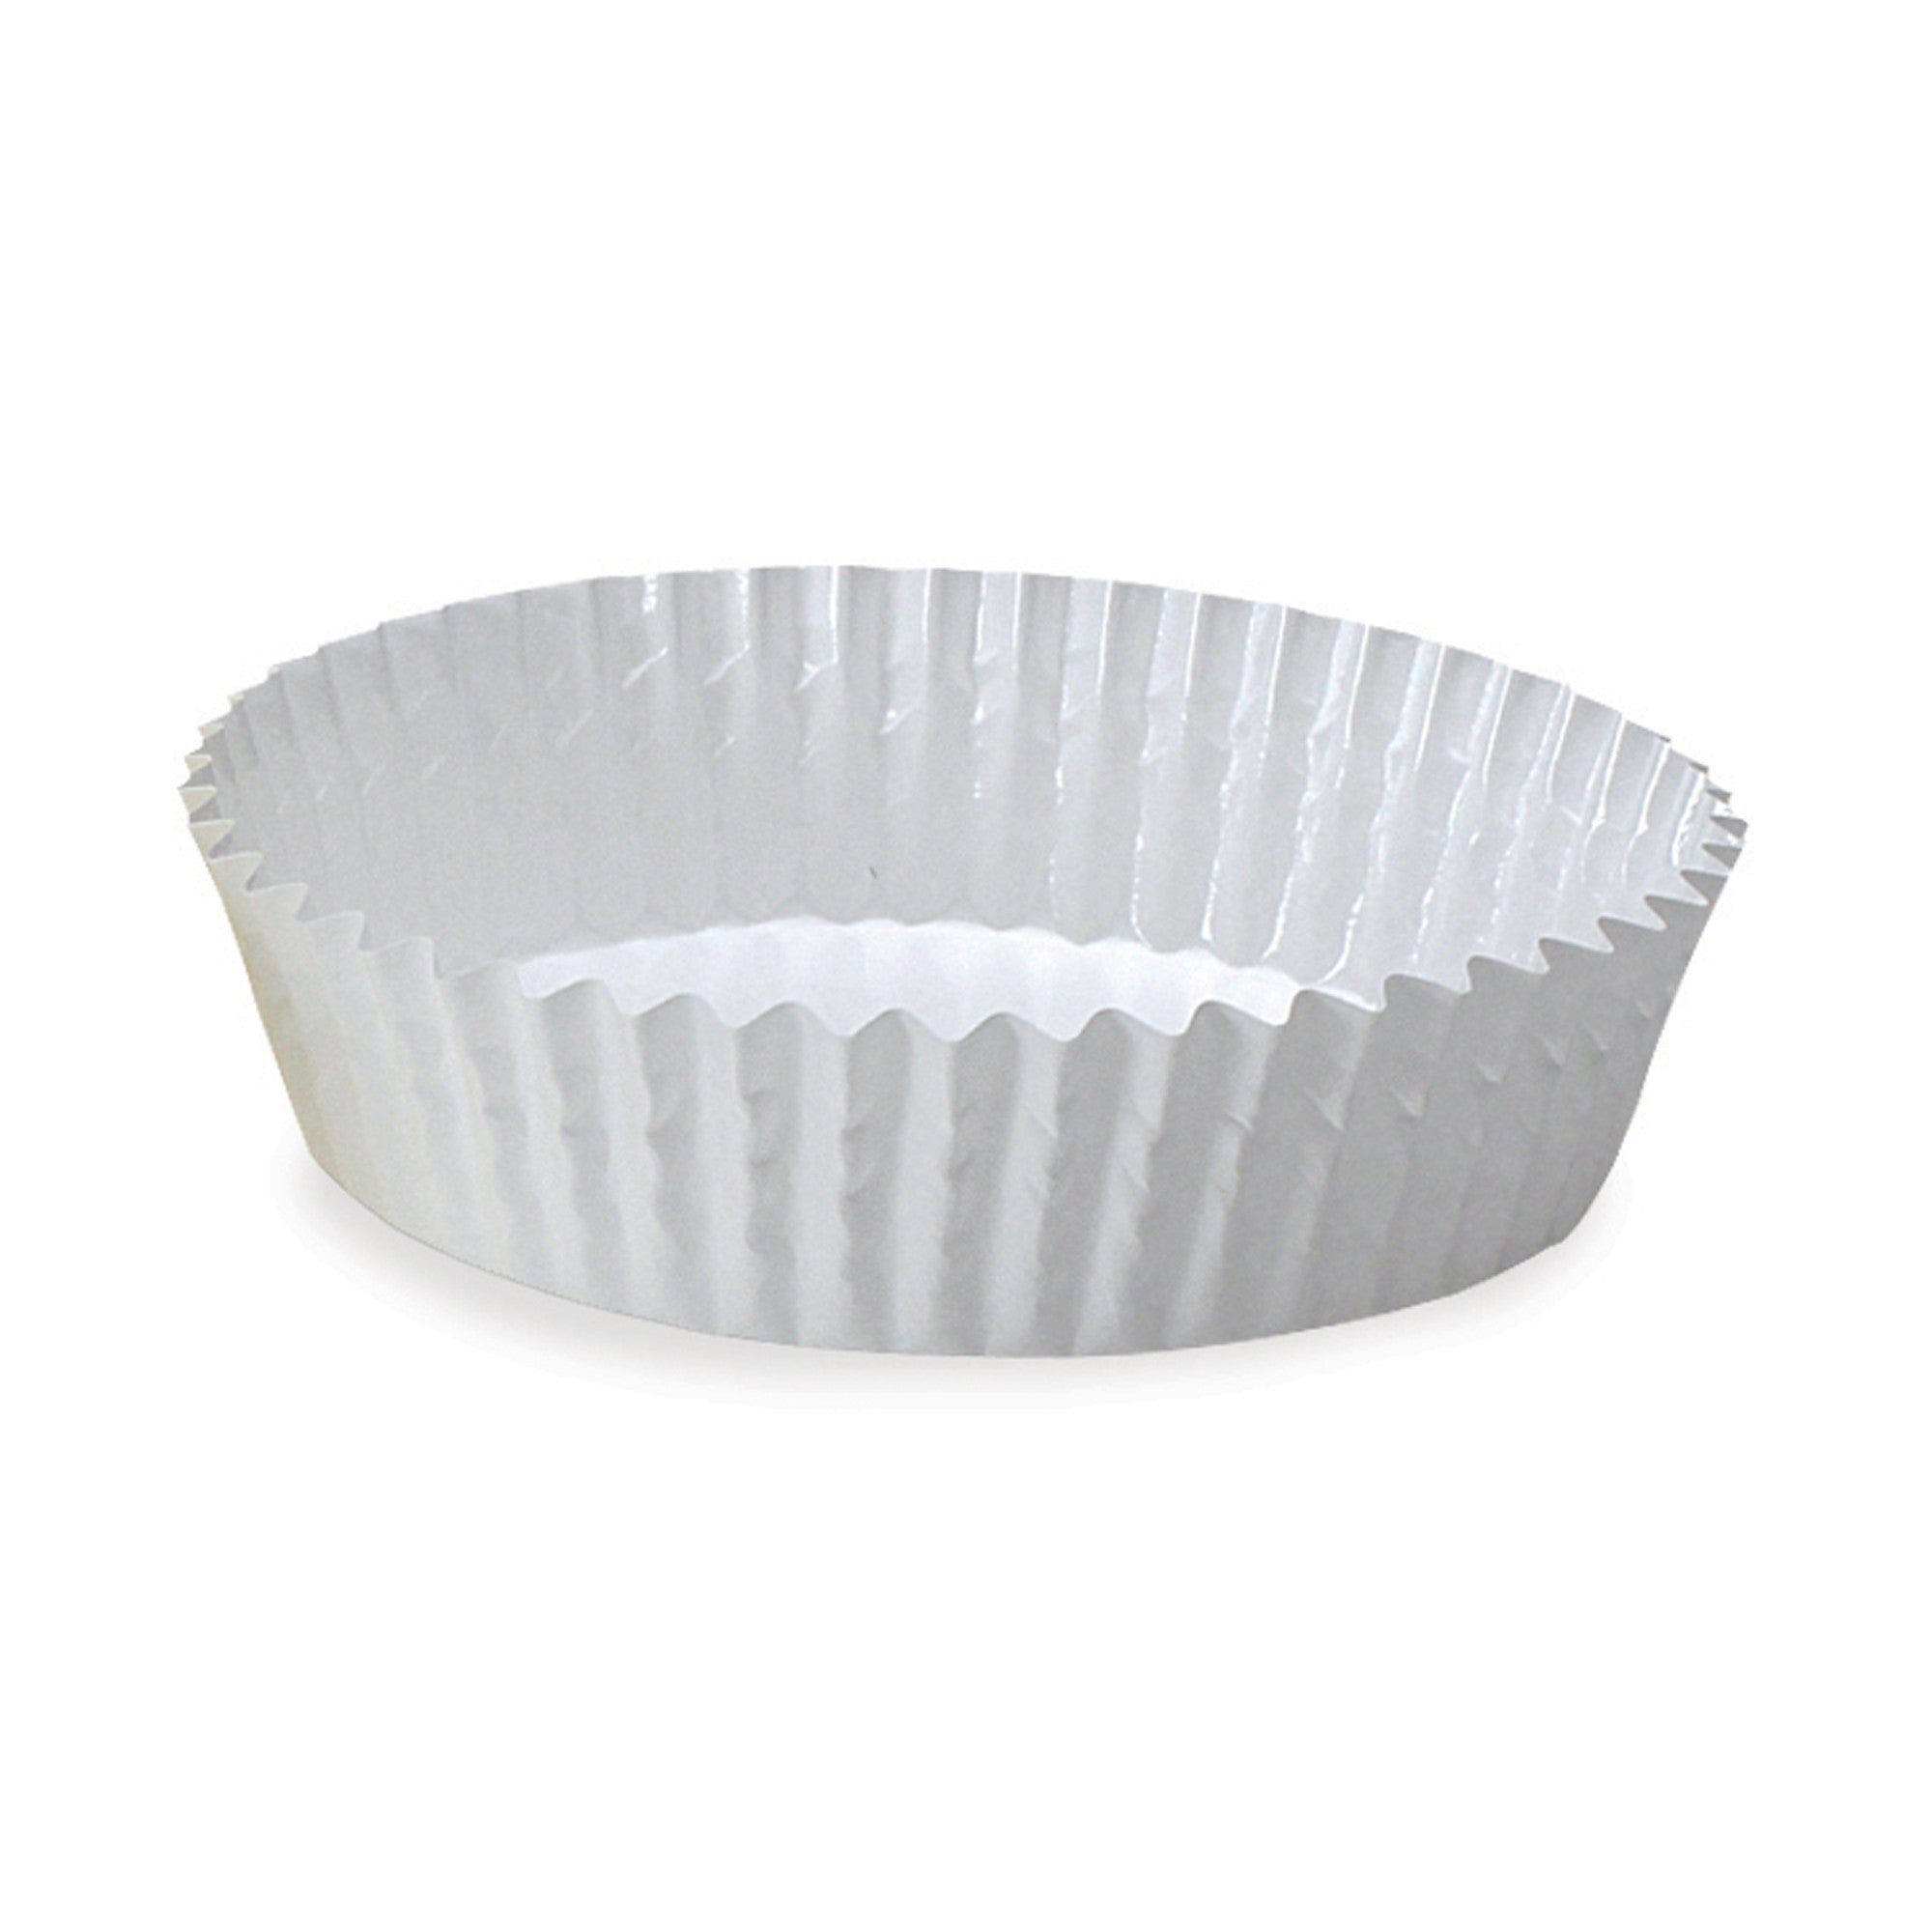 Ruffled Baking Cups, PTC10030W - Welcome Home Brands